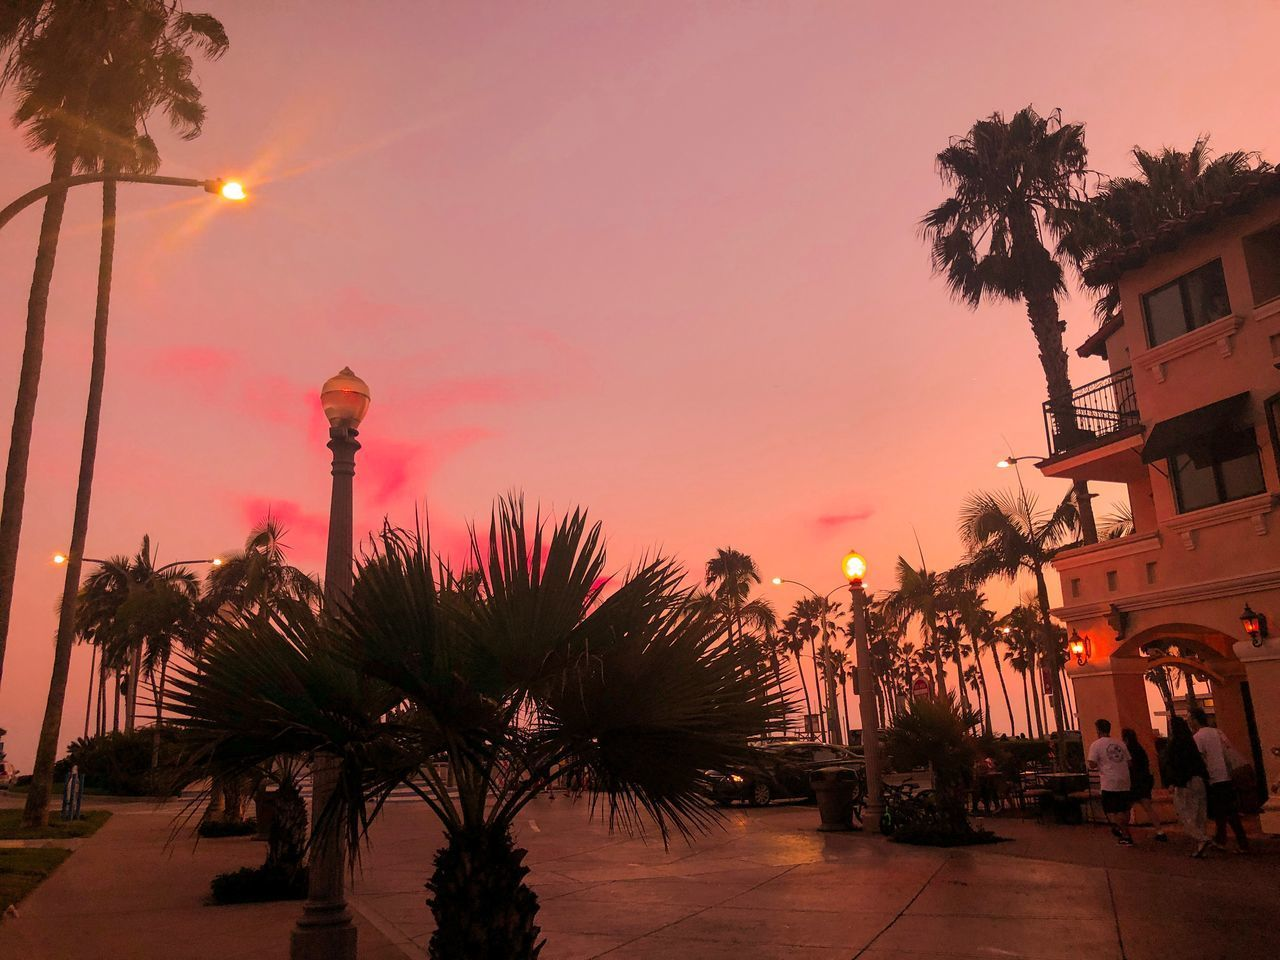 PALM TREES AND PLANTS AGAINST SKY AT SUNSET